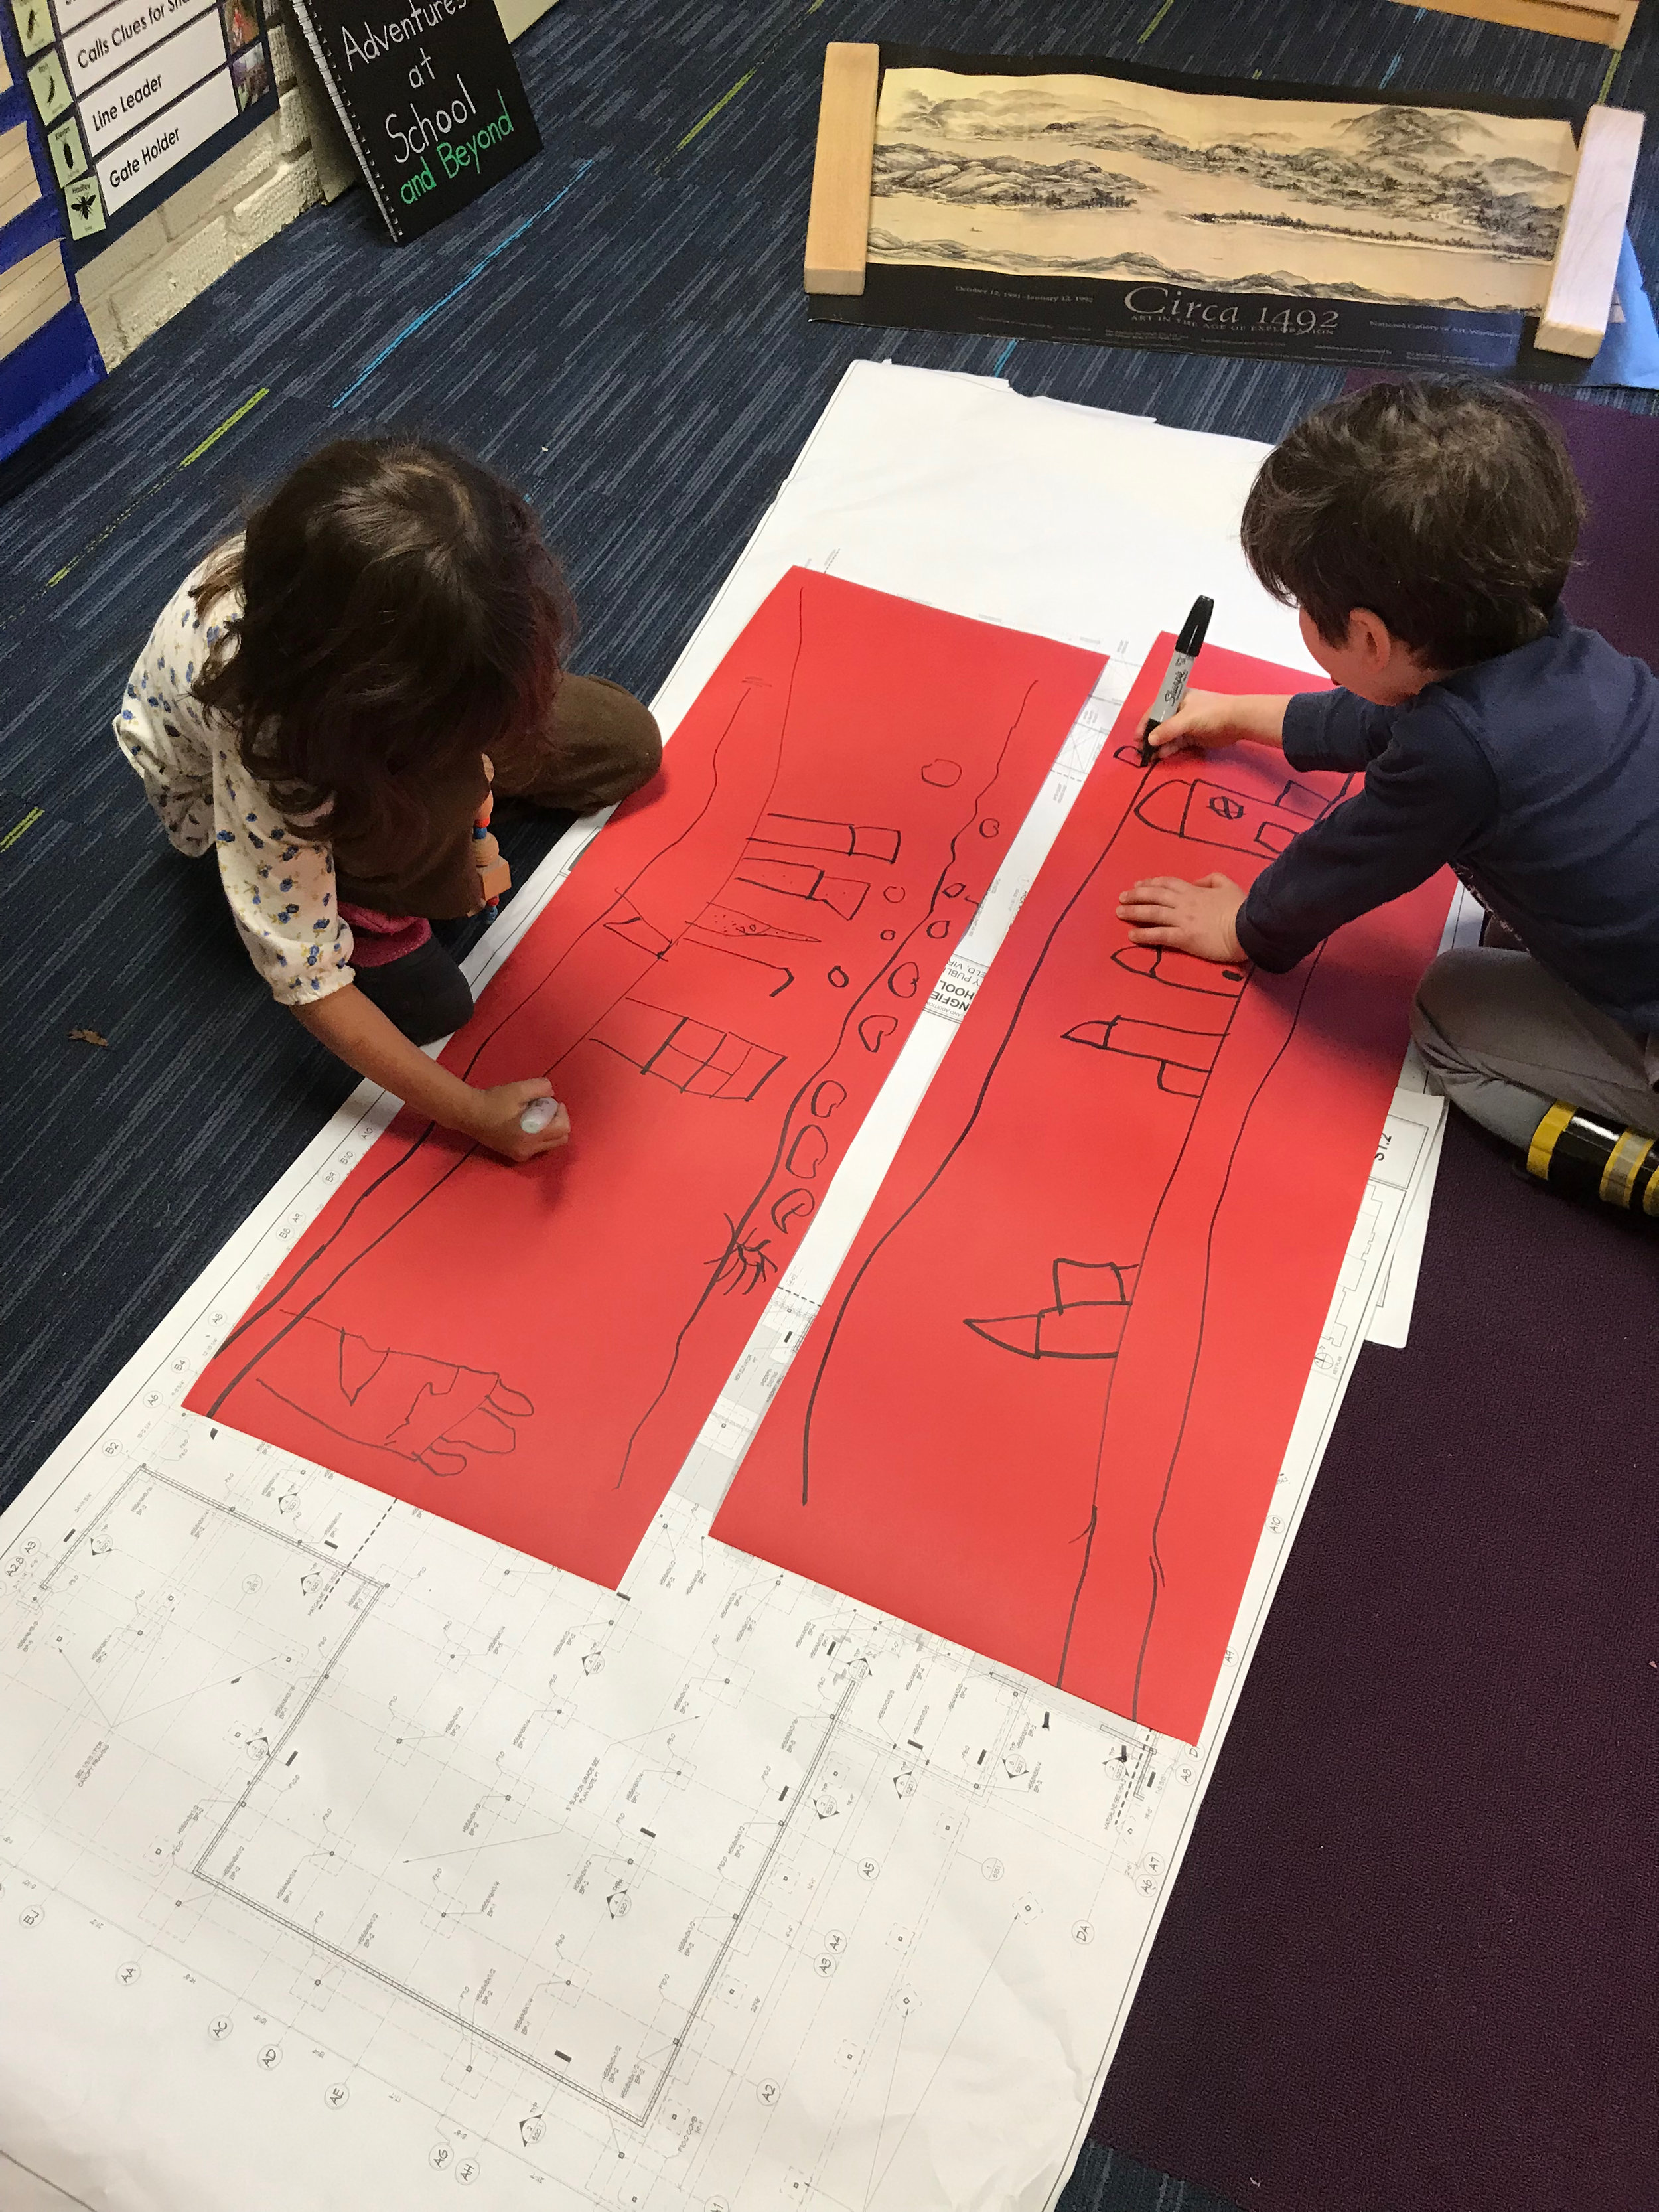 A drawing prompt. Using art prints for inspiration to explore the idea of landscapes, the children were asked to draw where they live. Working in pairs, there was collaboration. They talked as they drew, their lines and ideas mirroring and diverging from the other's drawing.